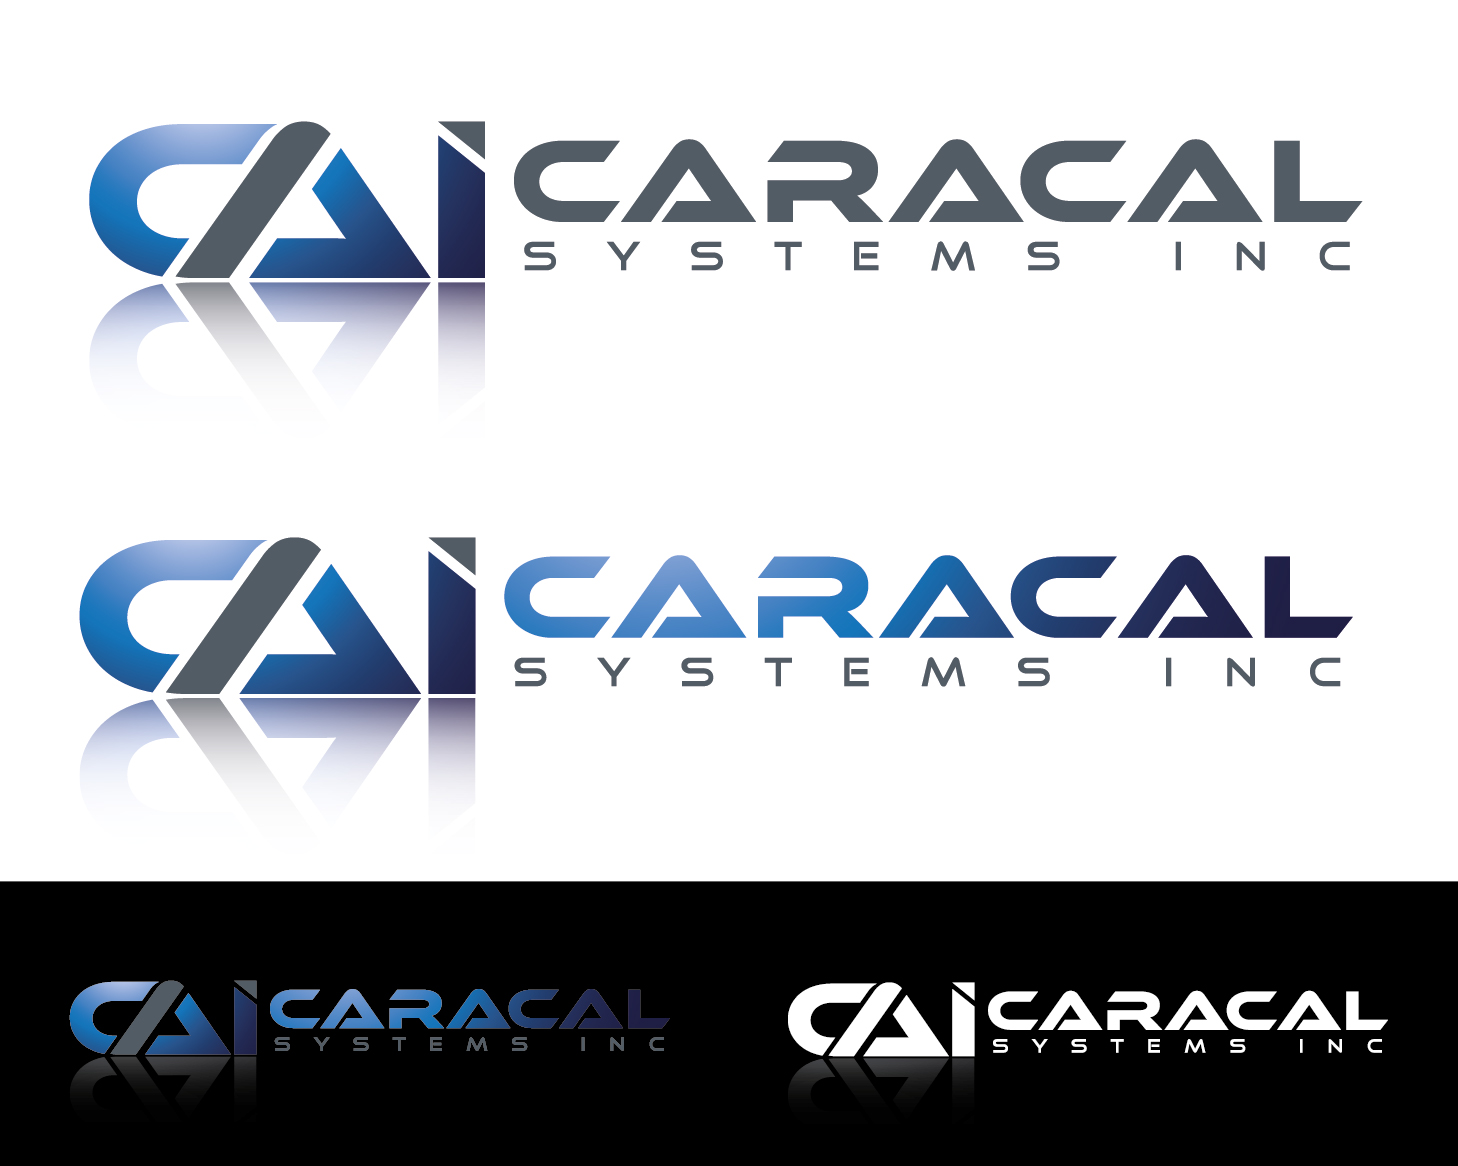 Logo Design by VENTSISLAV KOVACHEV - Entry No. 76 in the Logo Design Contest Inspiring Logo Design for Caracal Systems Inc..